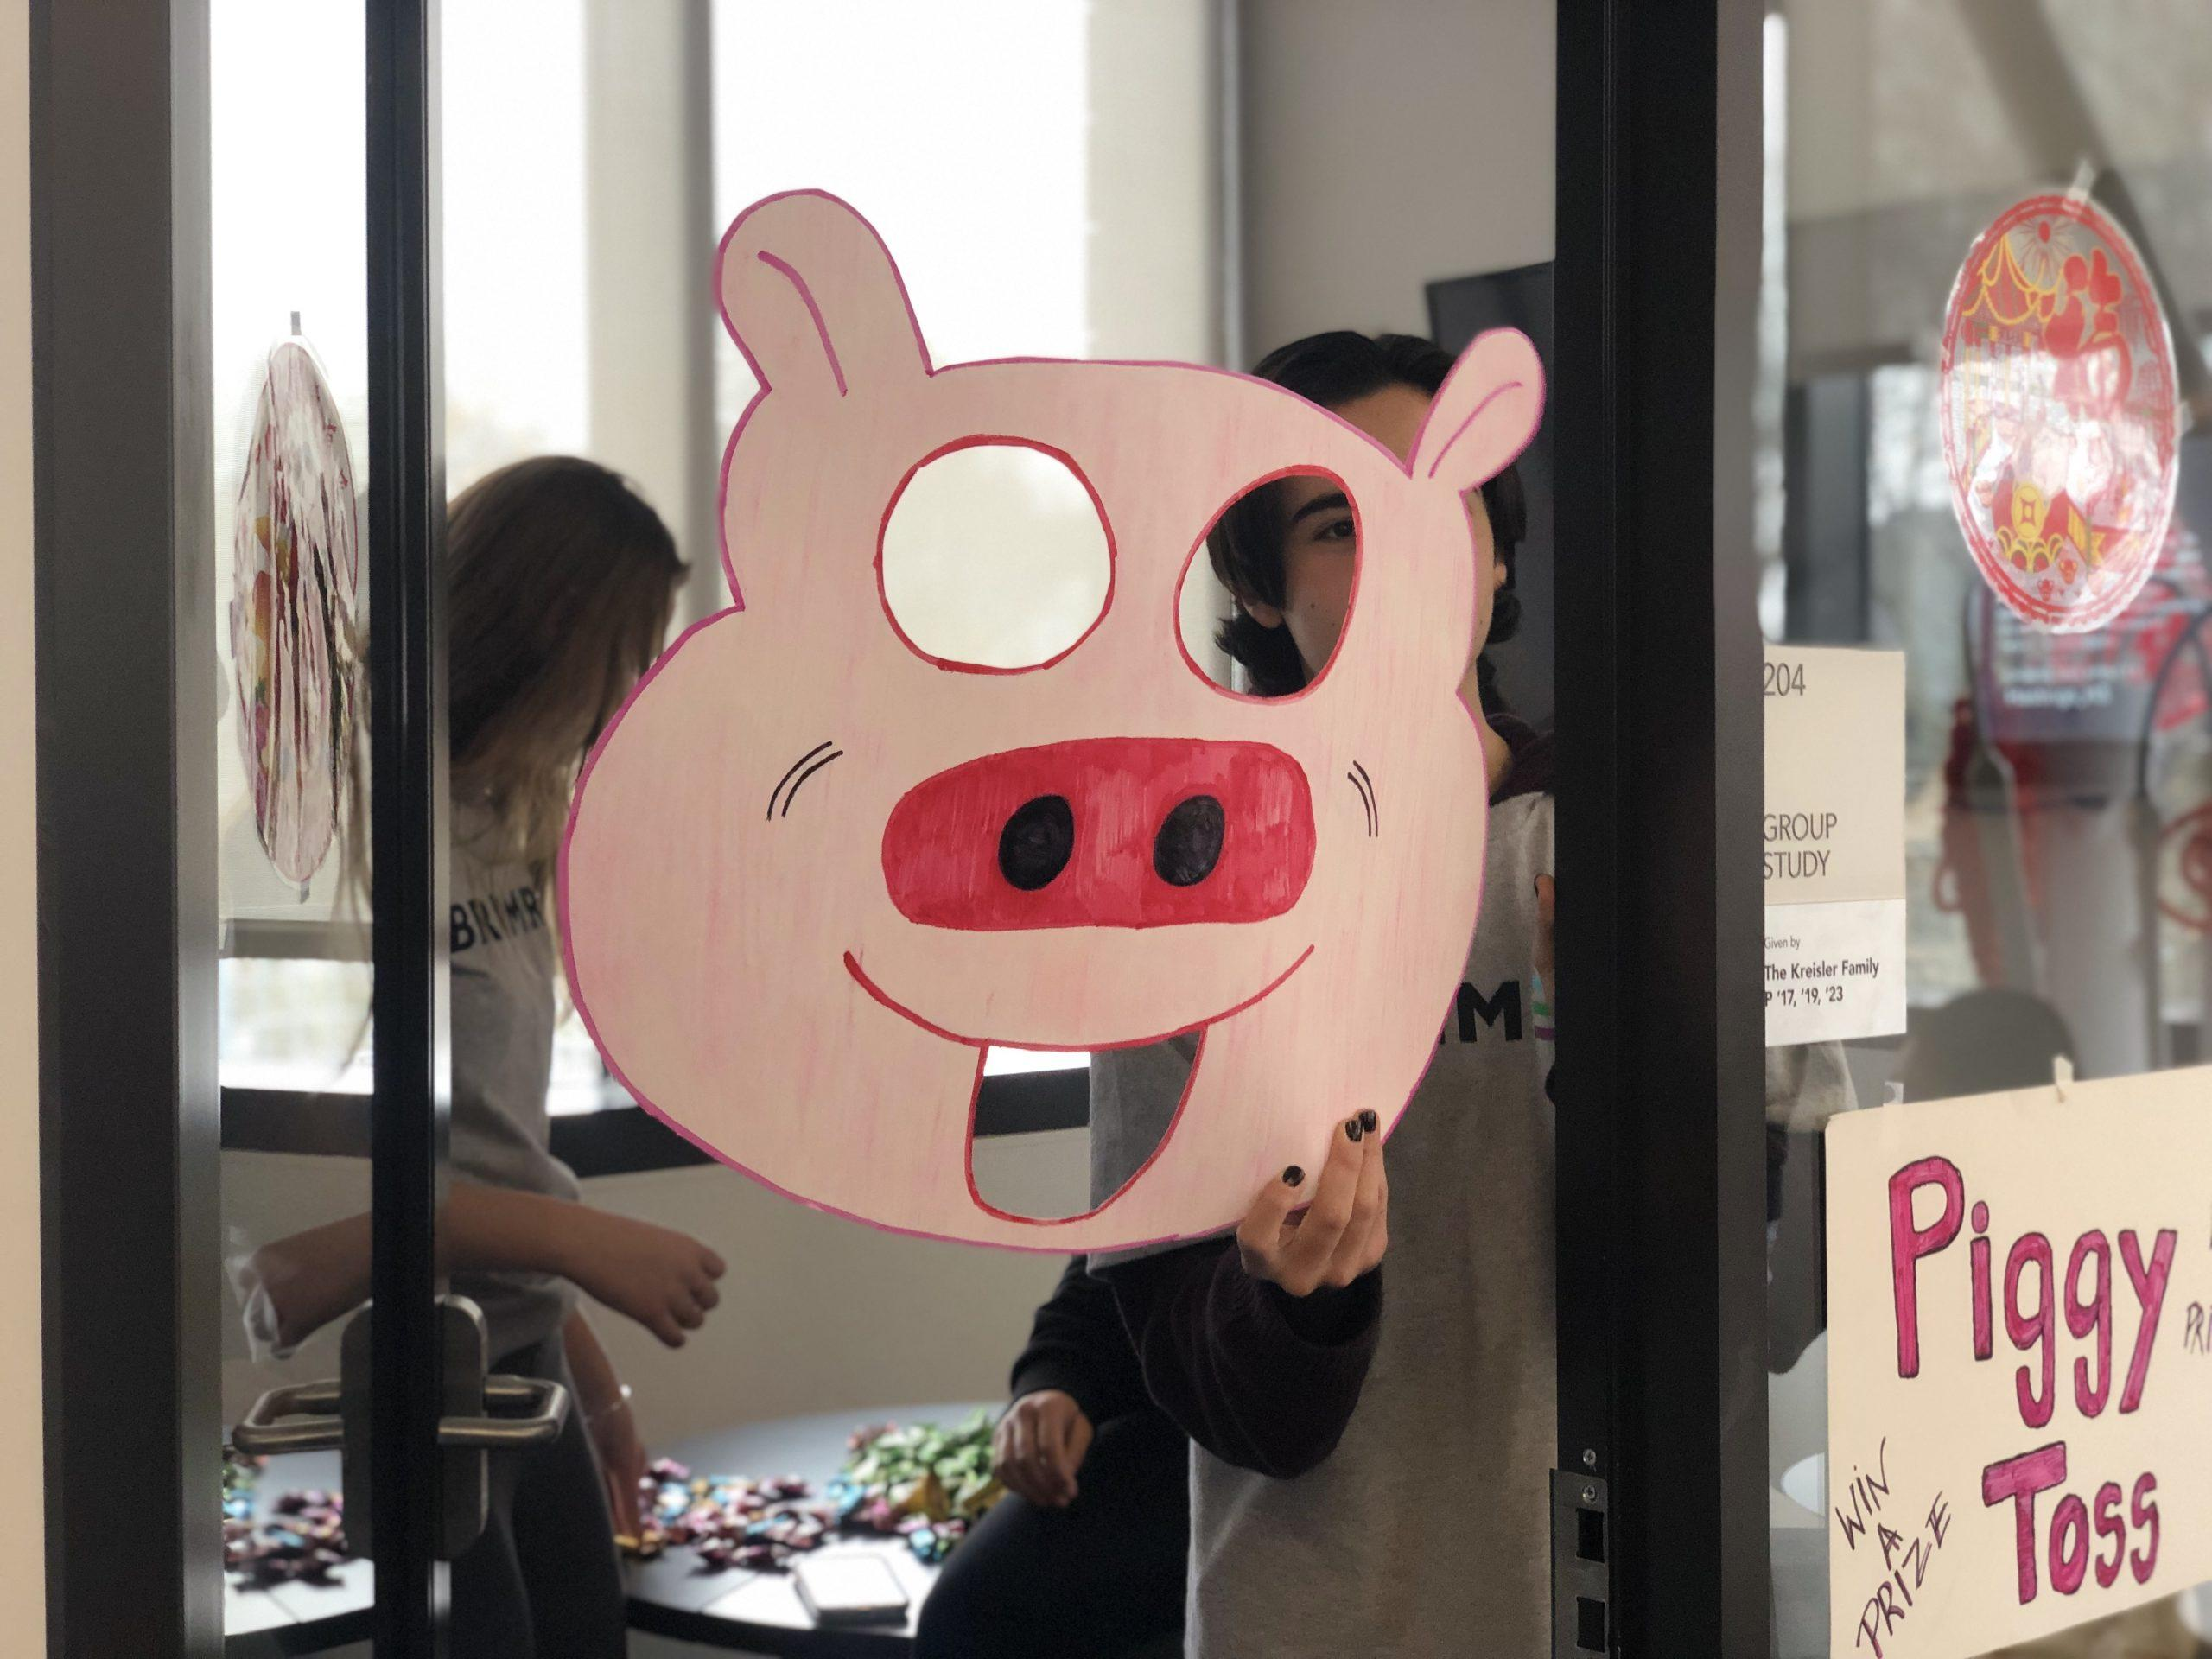 The+annual+event+attracted+large+crowds+to+celebrate+the+Year+of+the+Pig.+